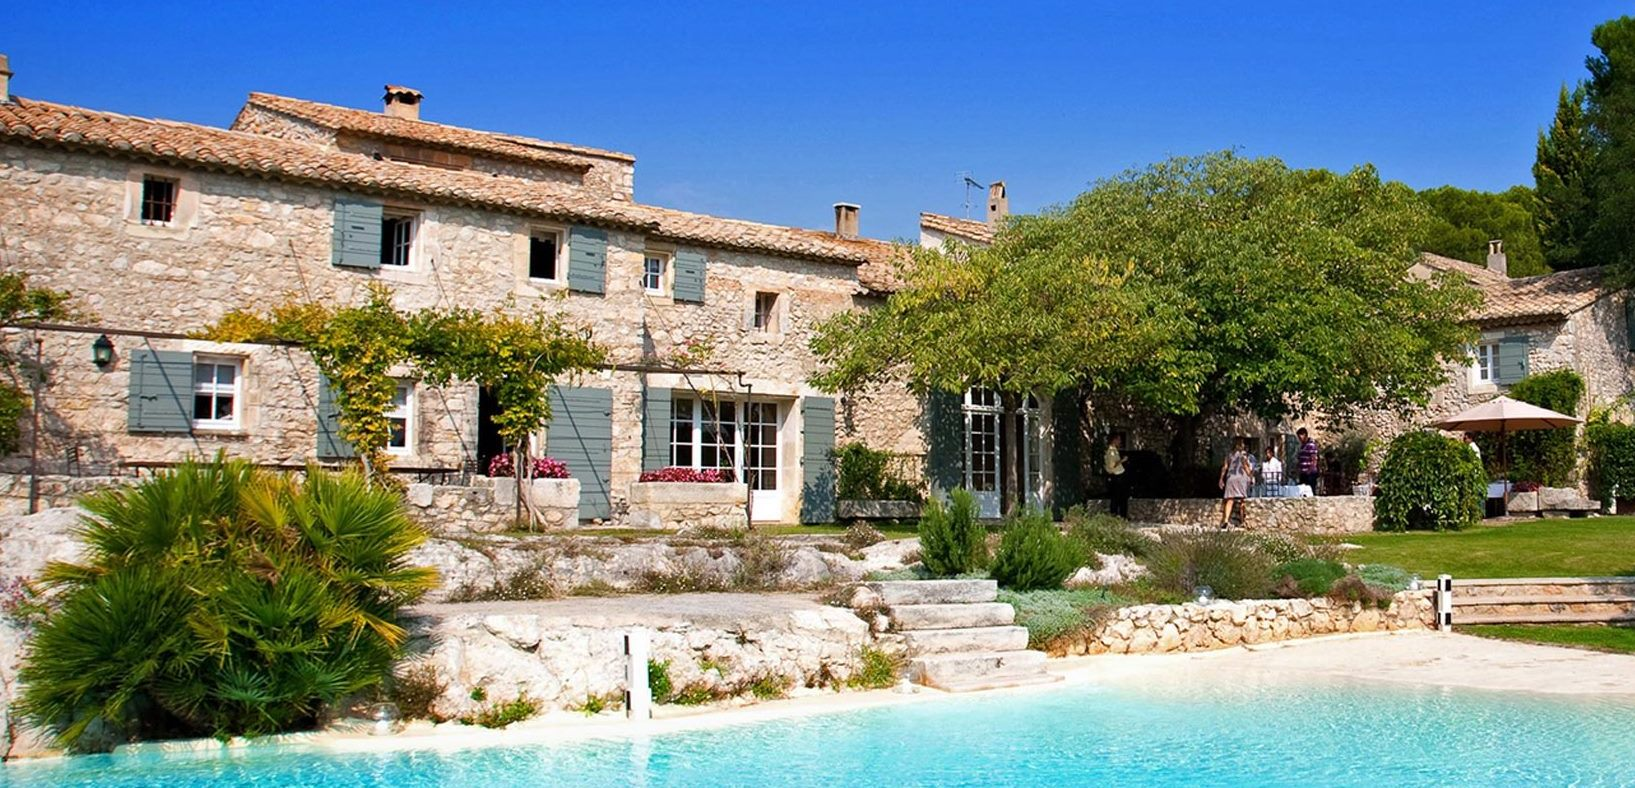 provence hotels with pools